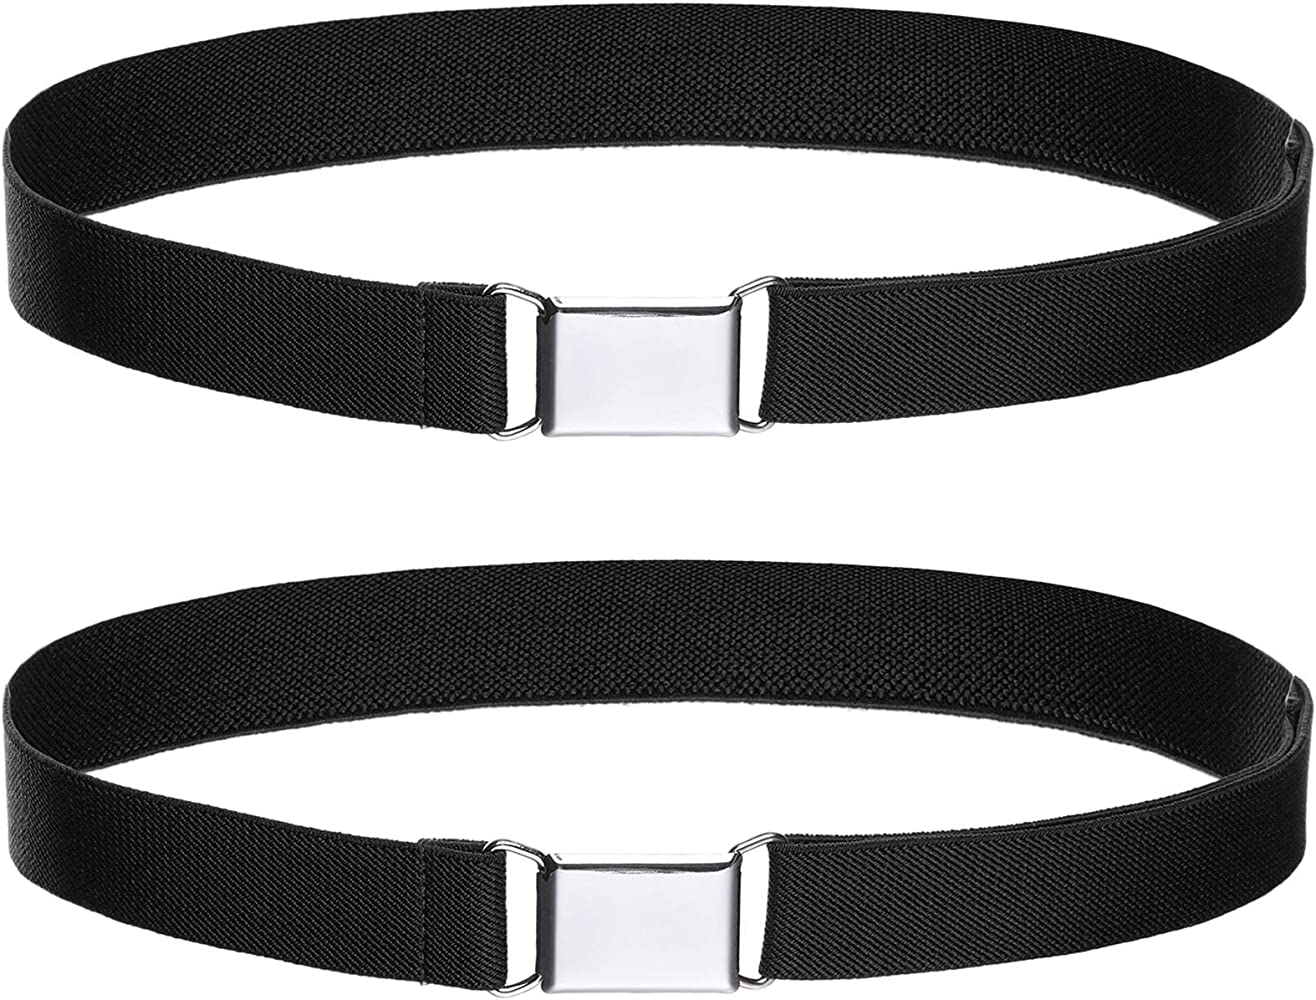 Toddler Boy Kids Buckle Adjustable Elastic Children Buckle Belts Waistband Hot